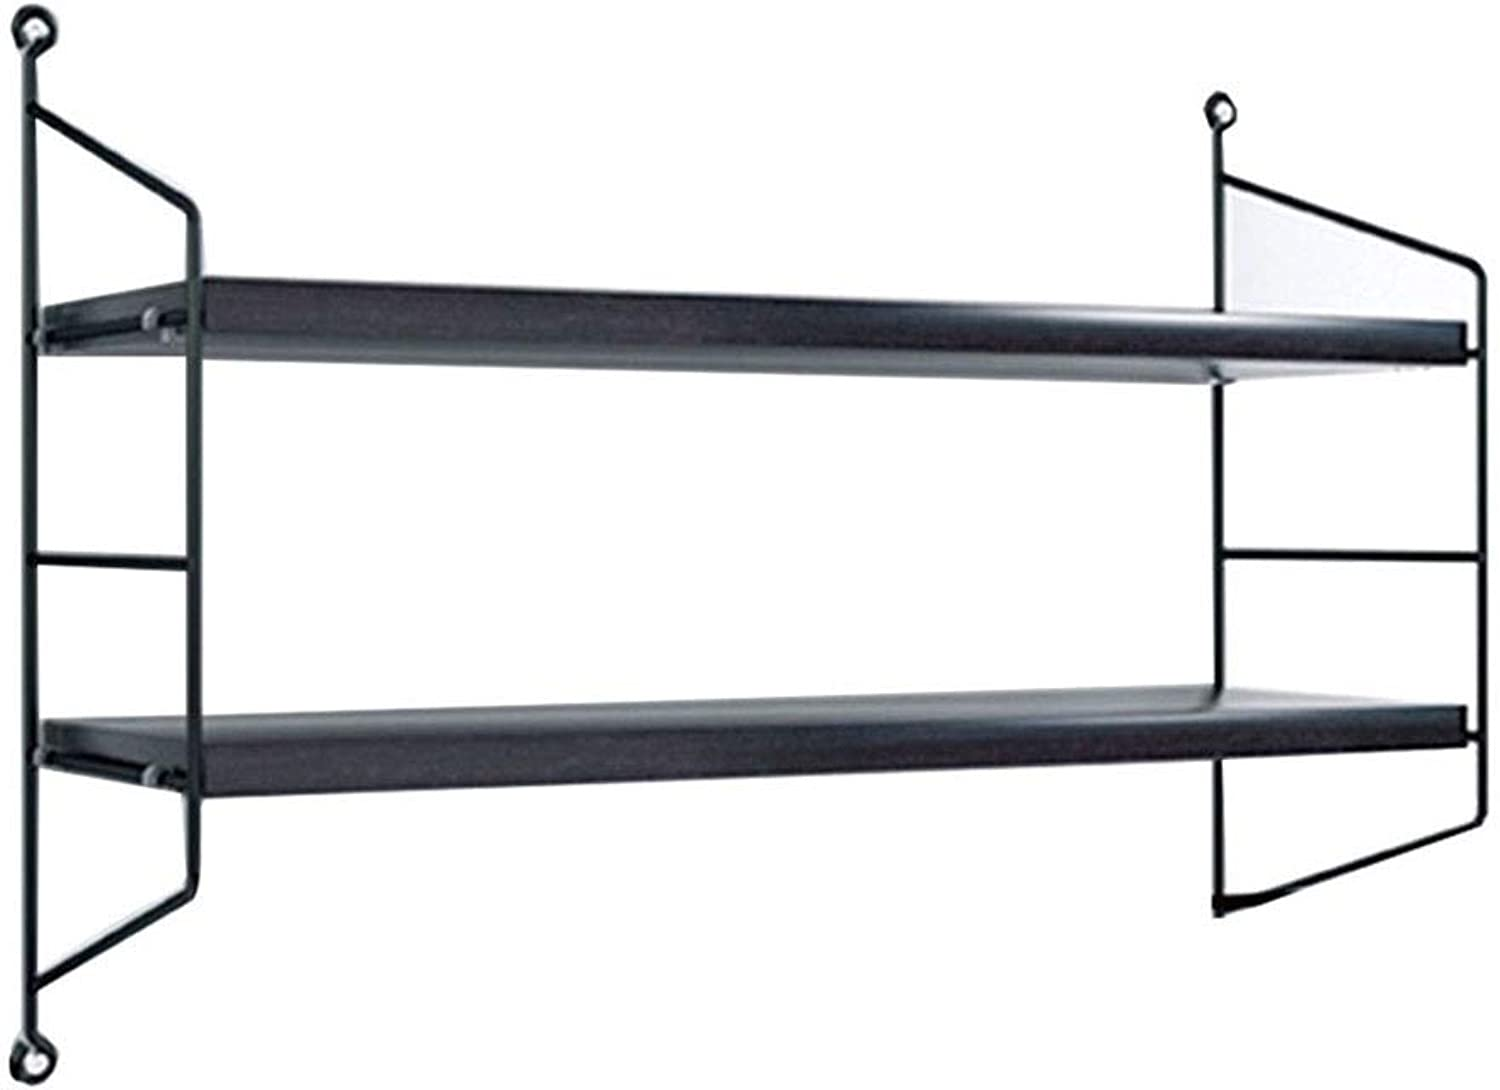 Wall Cabinets Rack Wall Hanging Rack Wall Storage Rack Home Display Stand partition Living Room Bedroom Wrought Iron Display Stand Free Punch Load 30kg Wall Cabinets